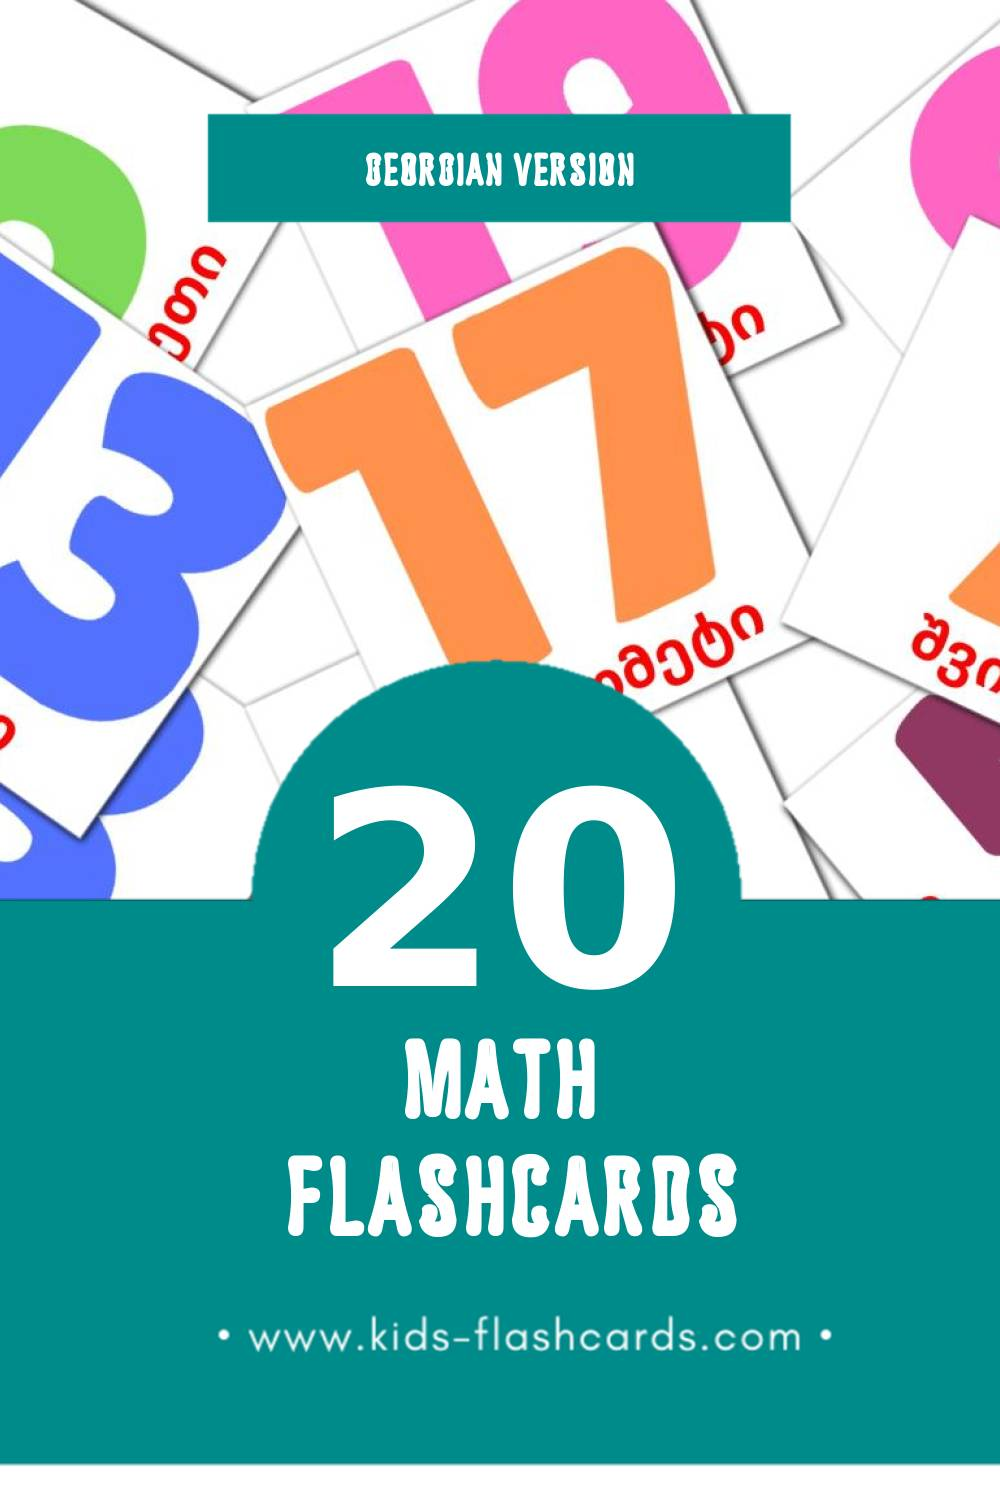 Visual რიცხვები Flashcards for Toddlers (20 cards in Georgian)